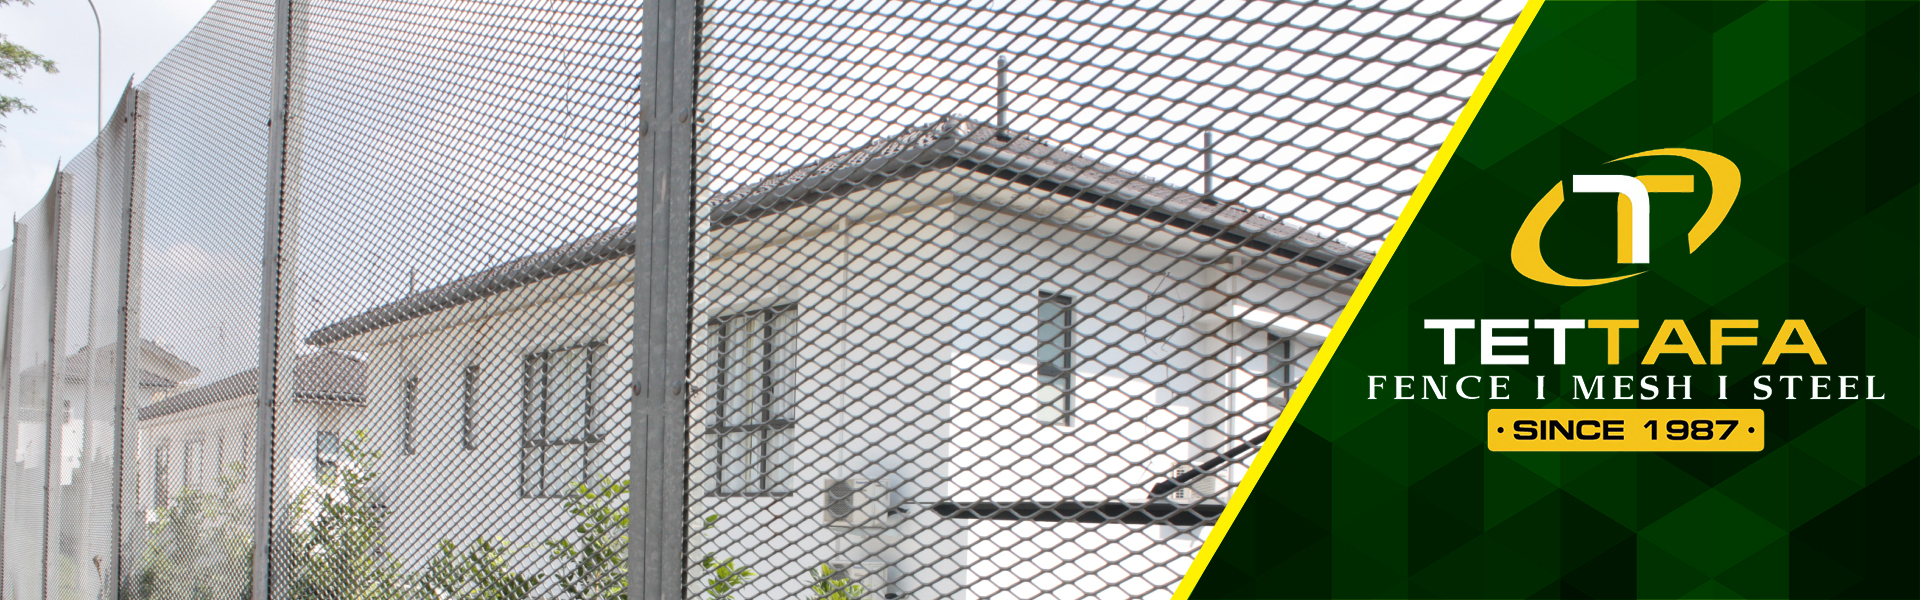 Expanded Metal Fencing Manufacturer in Malaysia | TET Tafa